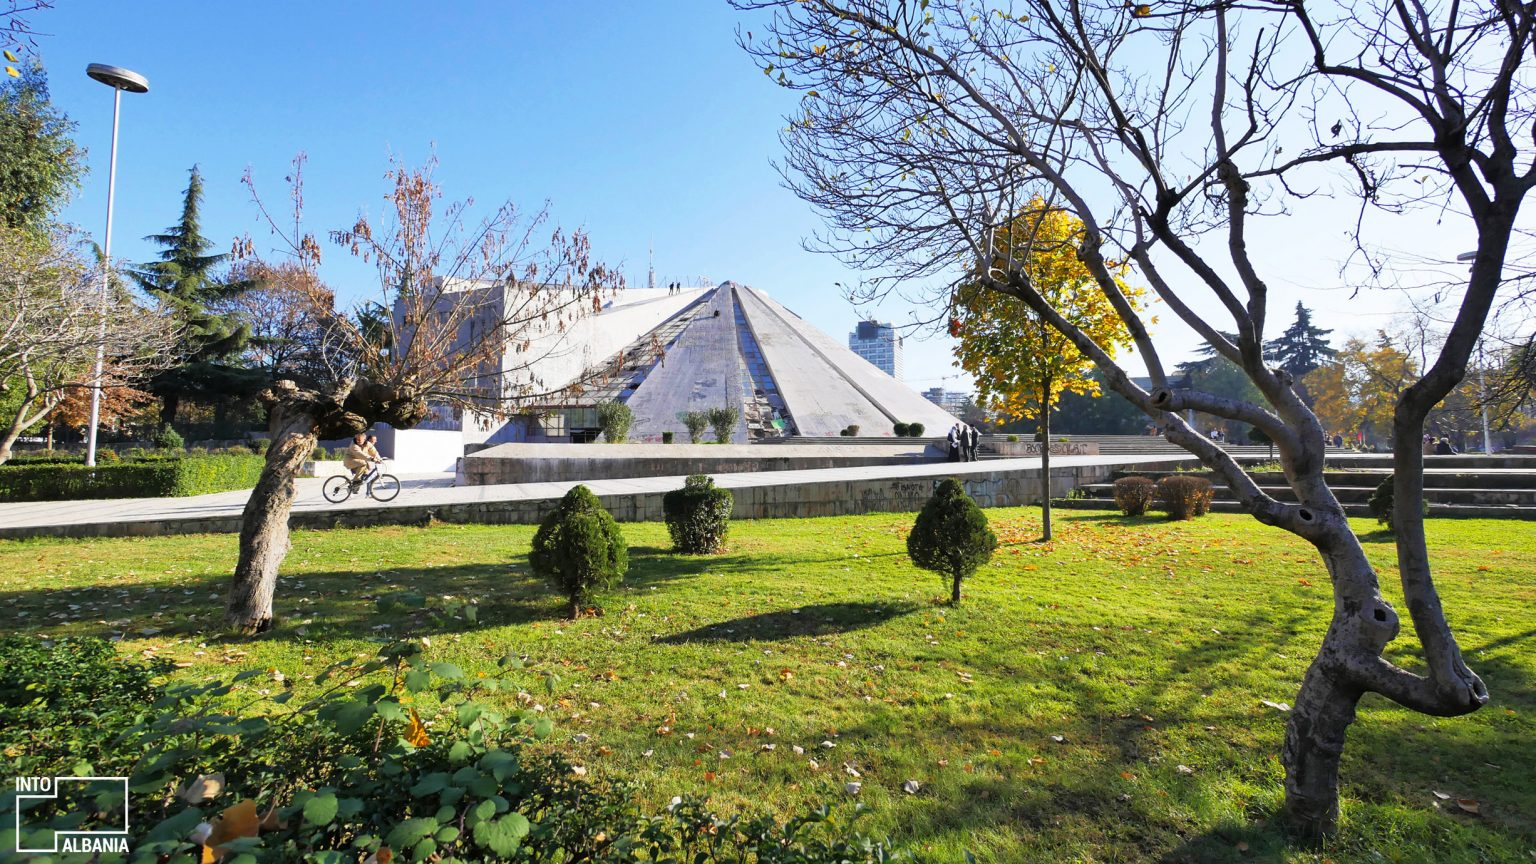 Pyramid of Tirana, photo by IntoAlbania.